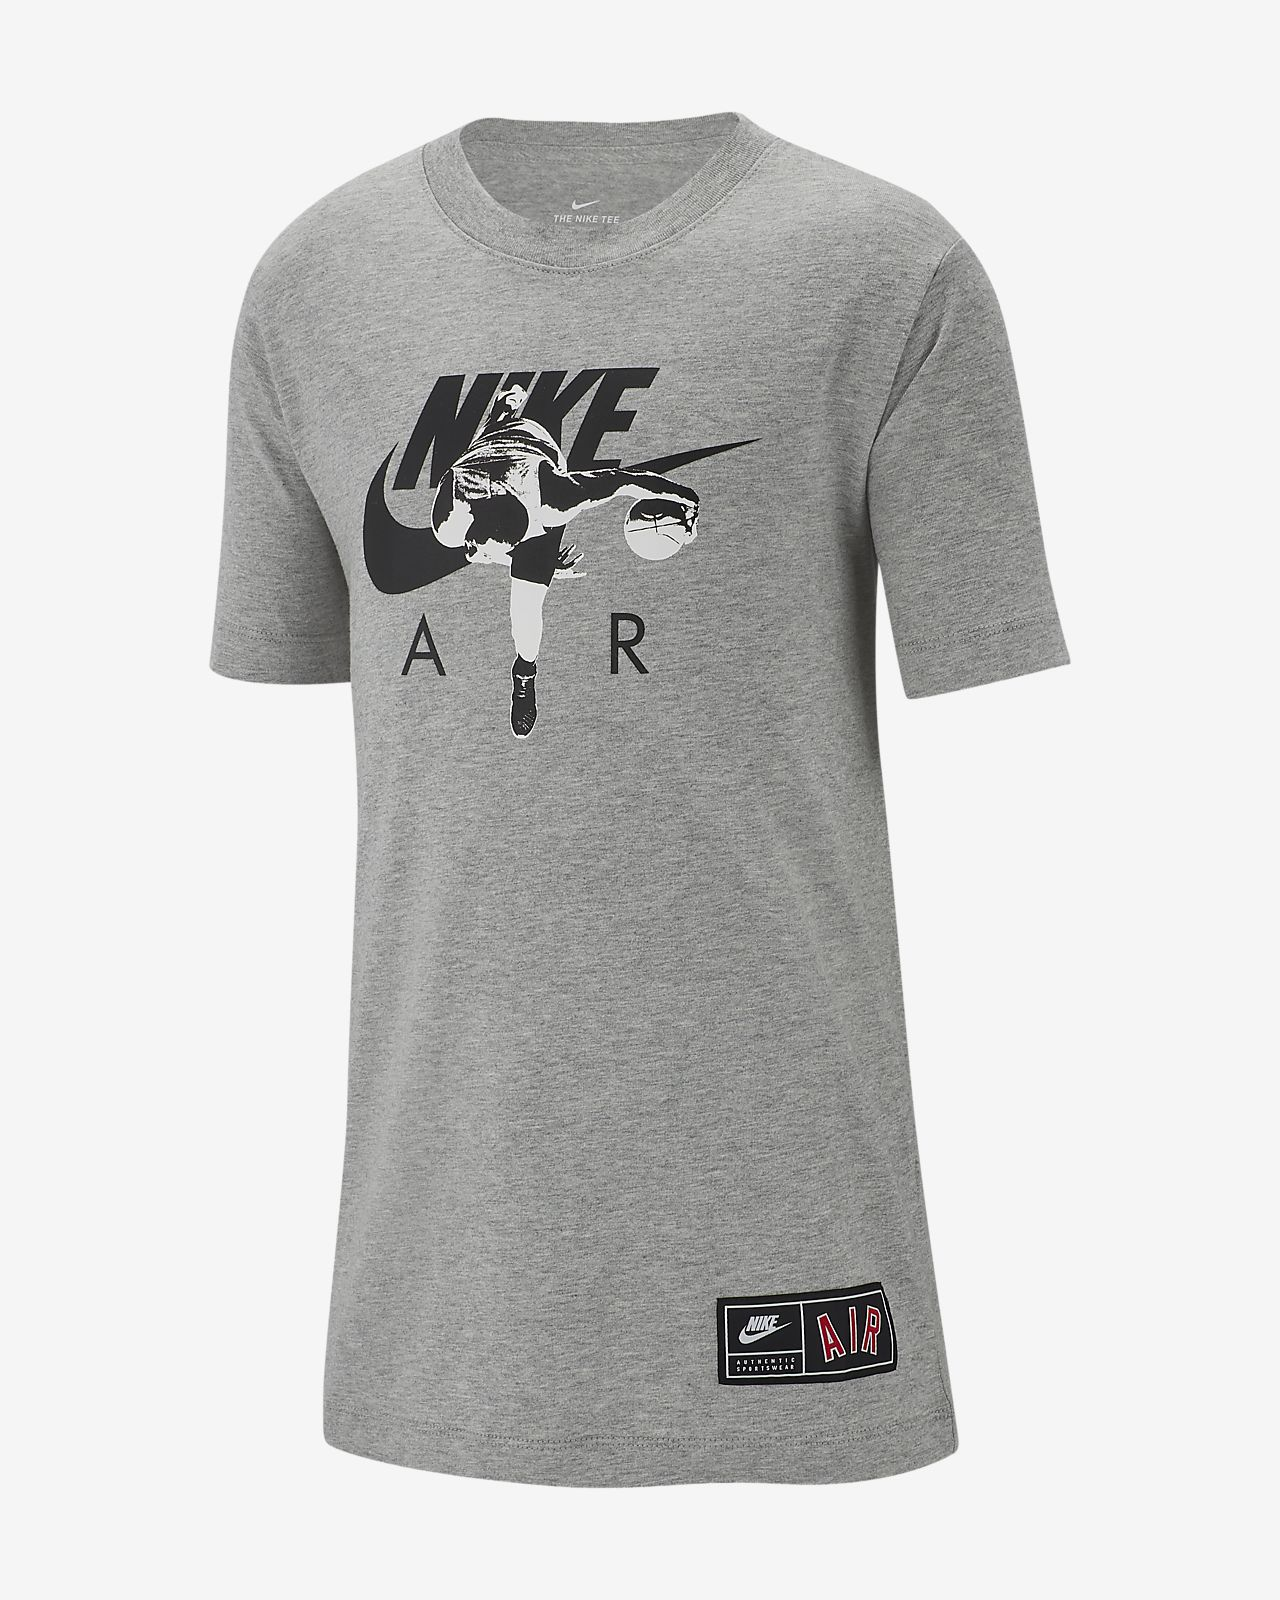 0a12b436 Nike Sportswear Older Kids' (Boys') T-Shirt. Nike.com IN